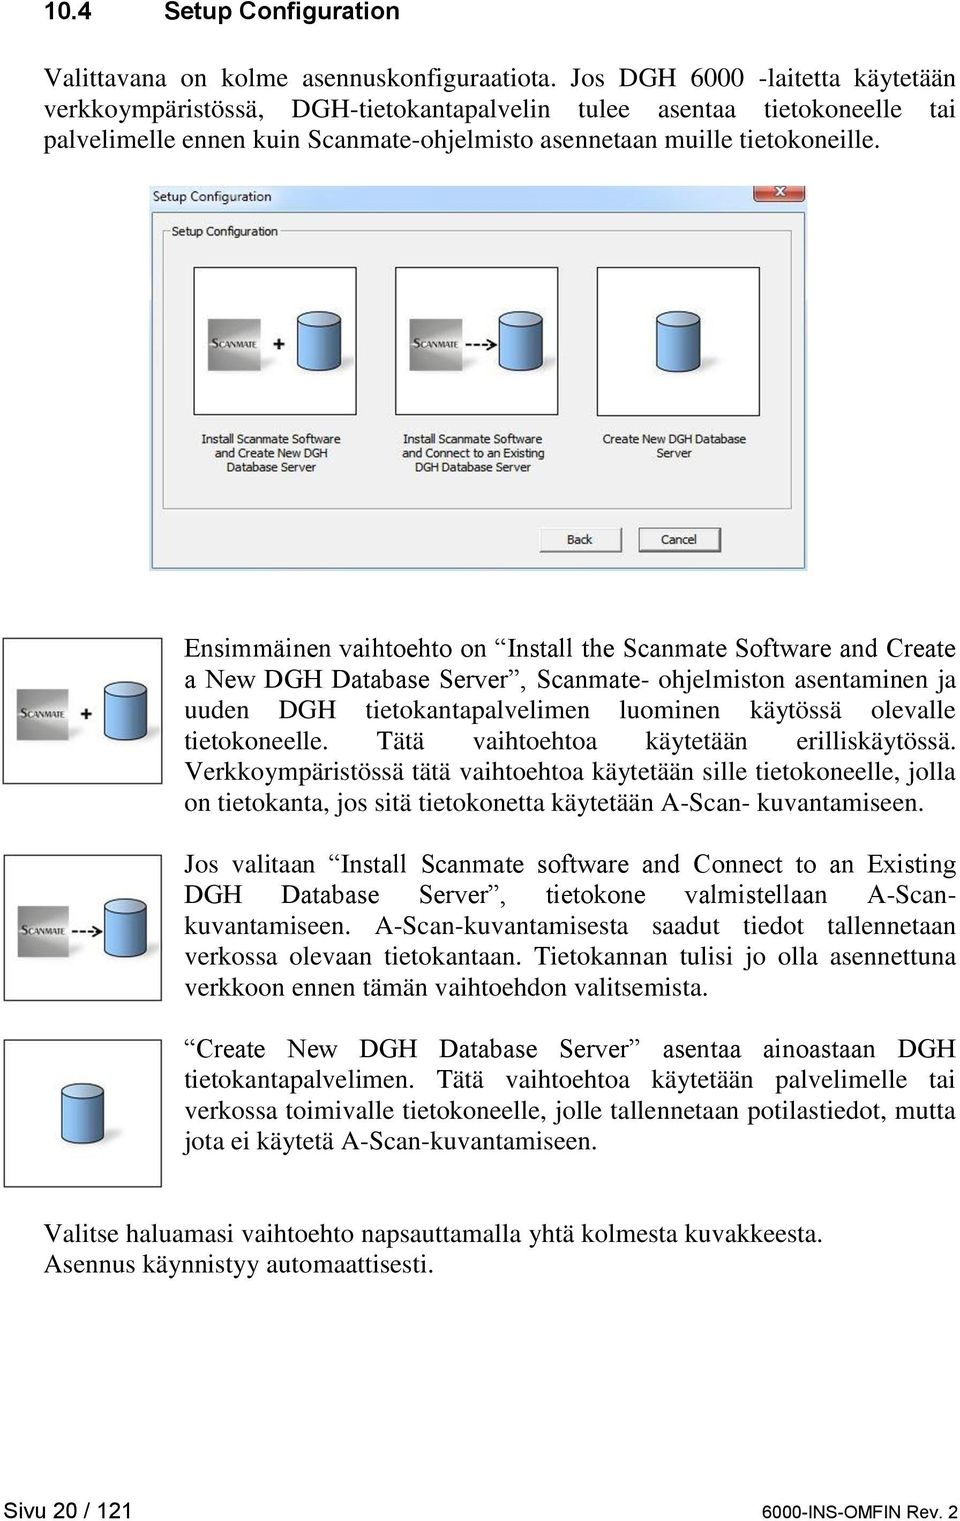 Ensimmäinen vaihtoehto on Install the Scanmate Software and Create a New DGH Database Server, Scanmate- ohjelmiston asentaminen ja uuden DGH tietokantapalvelimen luominen käytössä olevalle